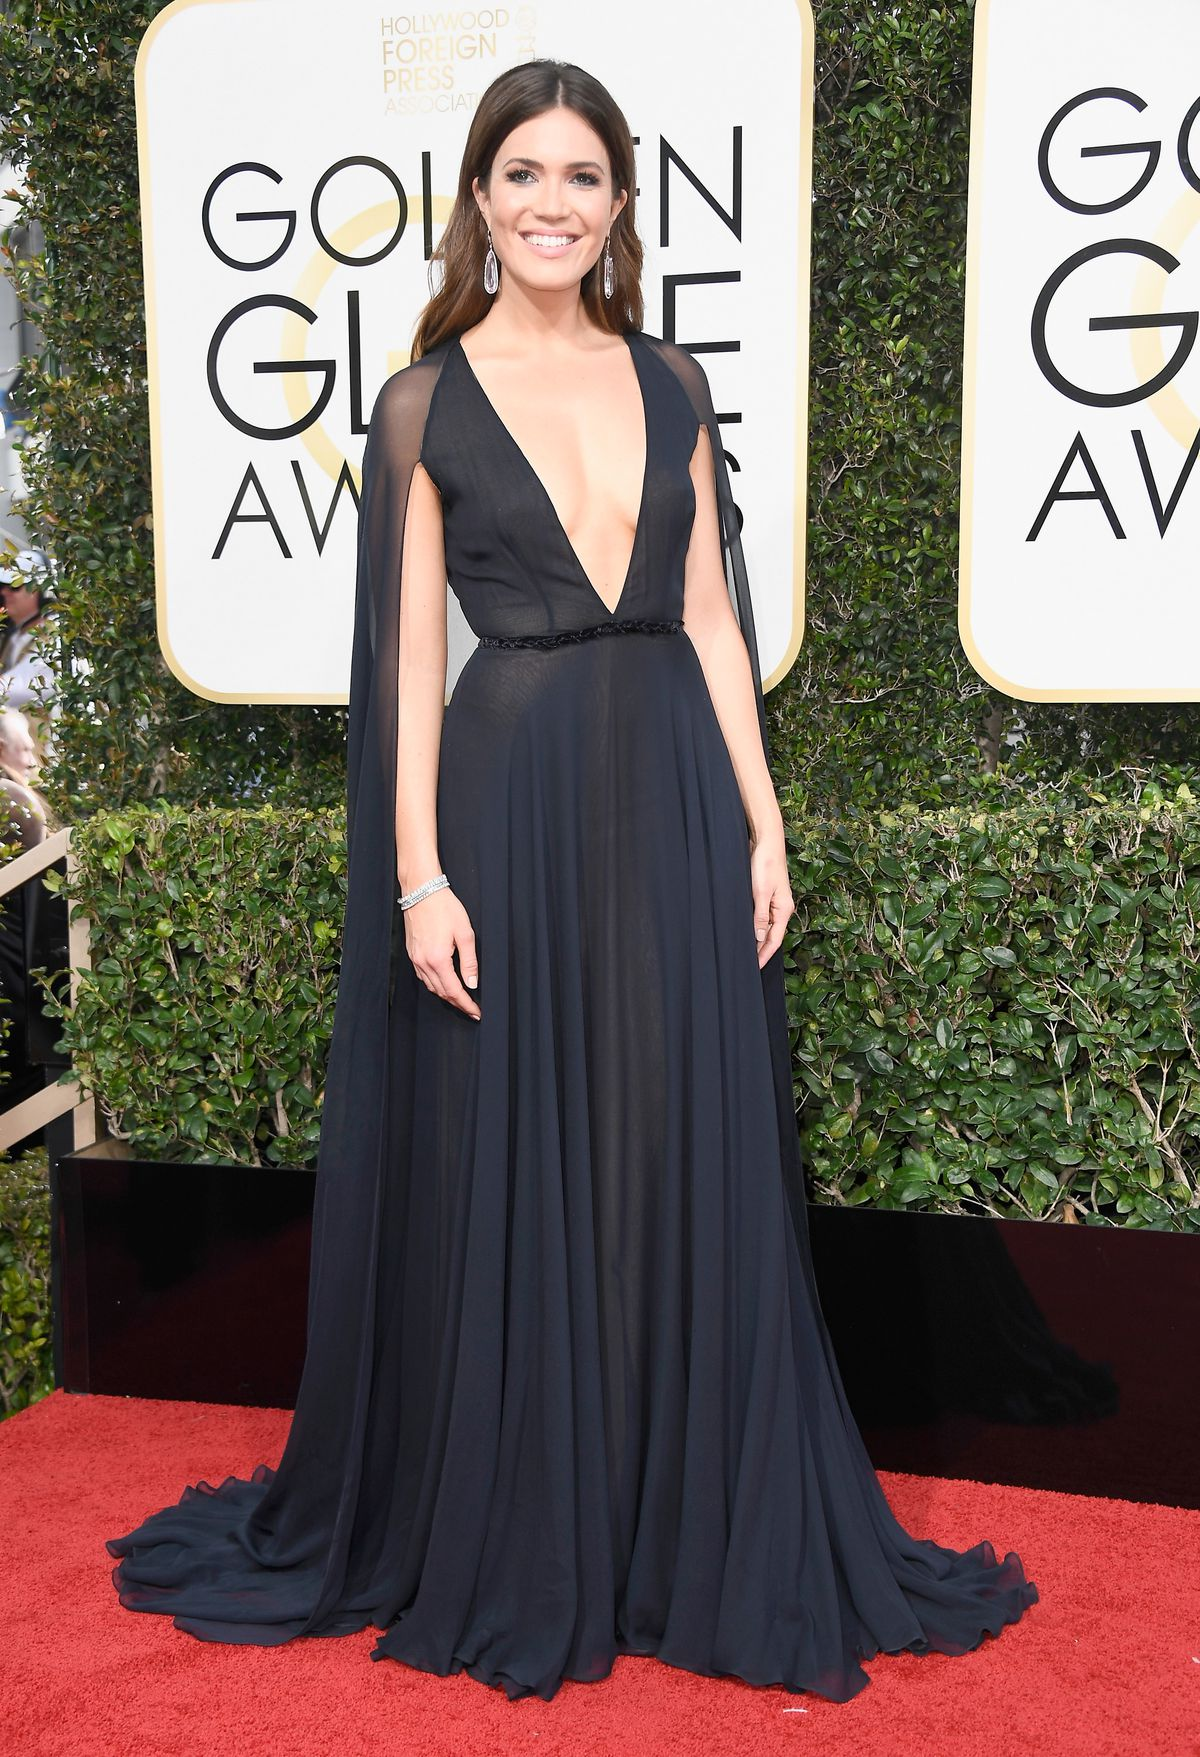 Actress Mandy Moore attends the 74th Annual Golden Globe Awards at The Beverly Hilton Hotel on January 8, 2017 in Beverly Hills, California.